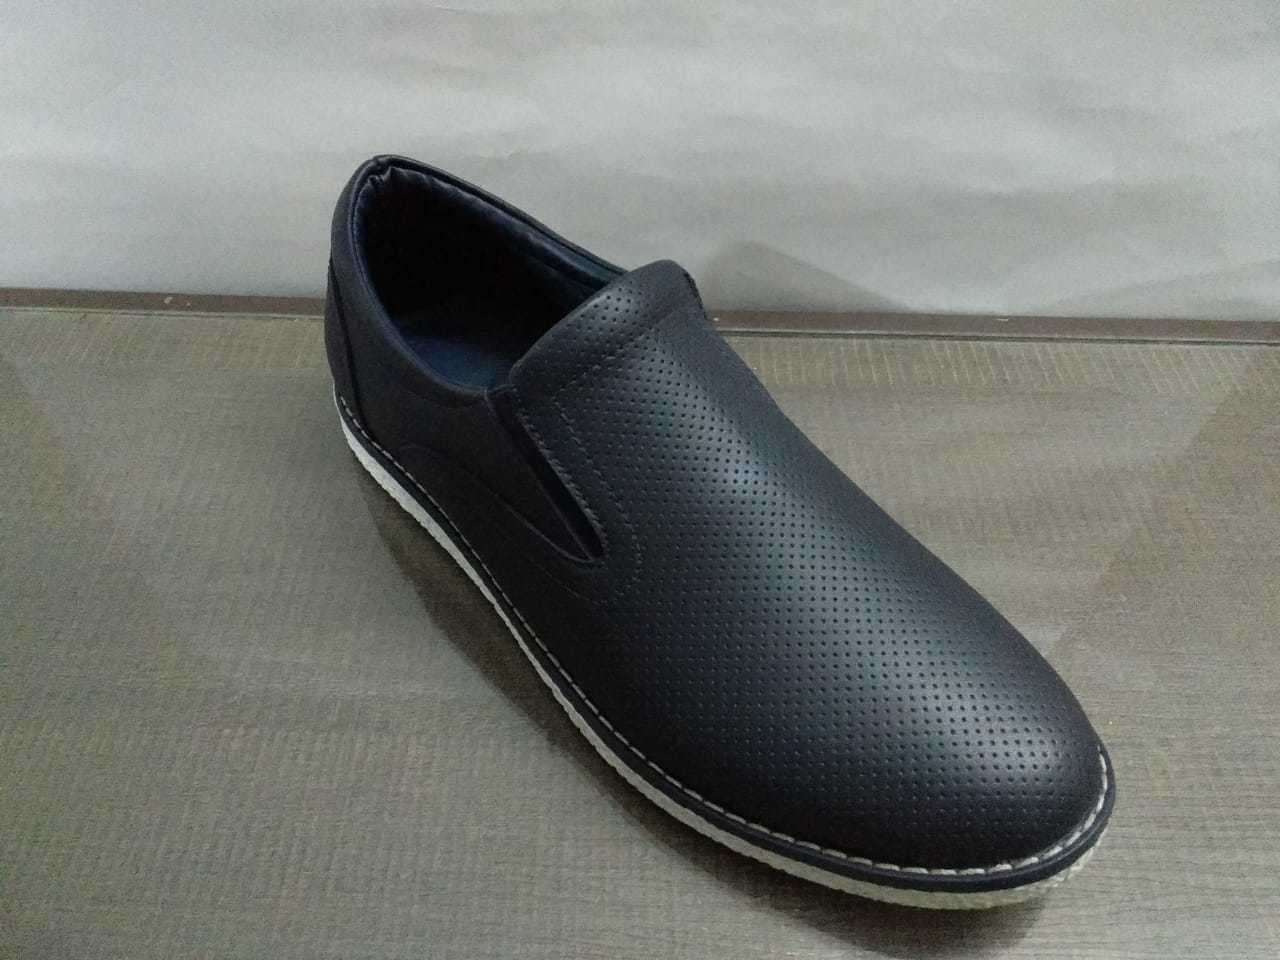 LOAFER CASUAL SHOES FOR MEN'S